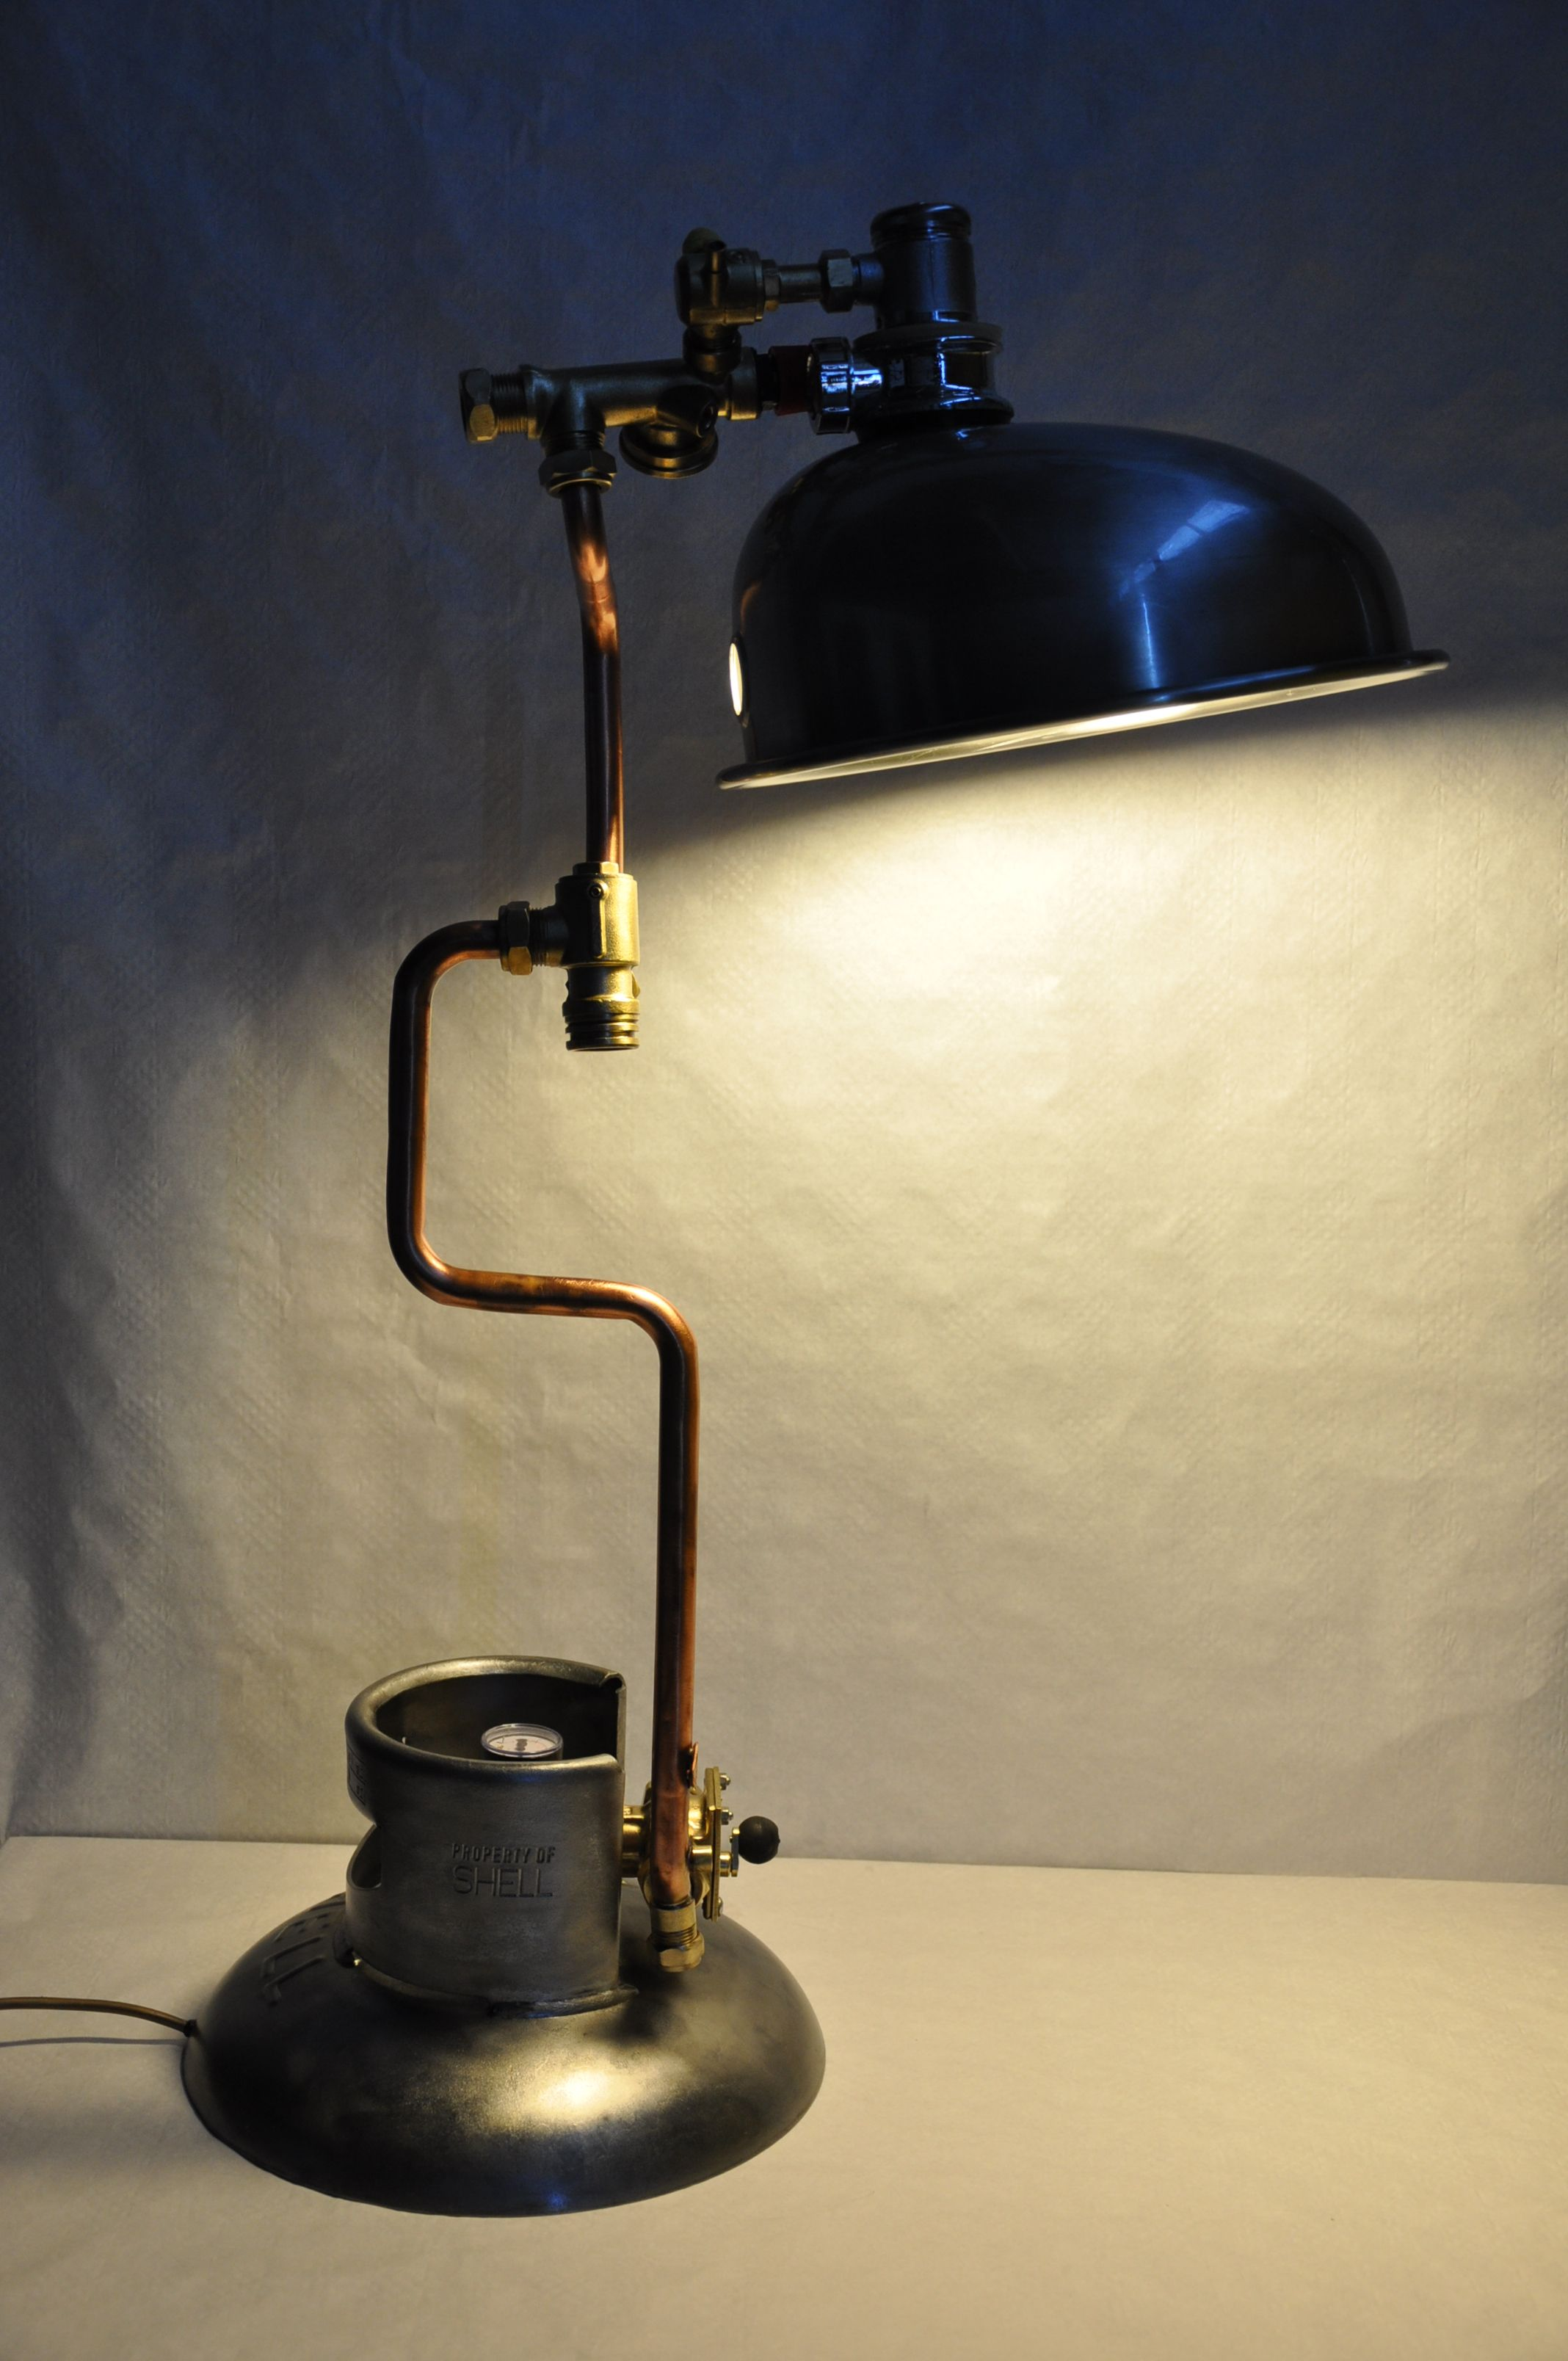 Sink And Gas Bottle Lamp Love Child Of Water And Fire Lamp Bottle Lamp Lamp Design